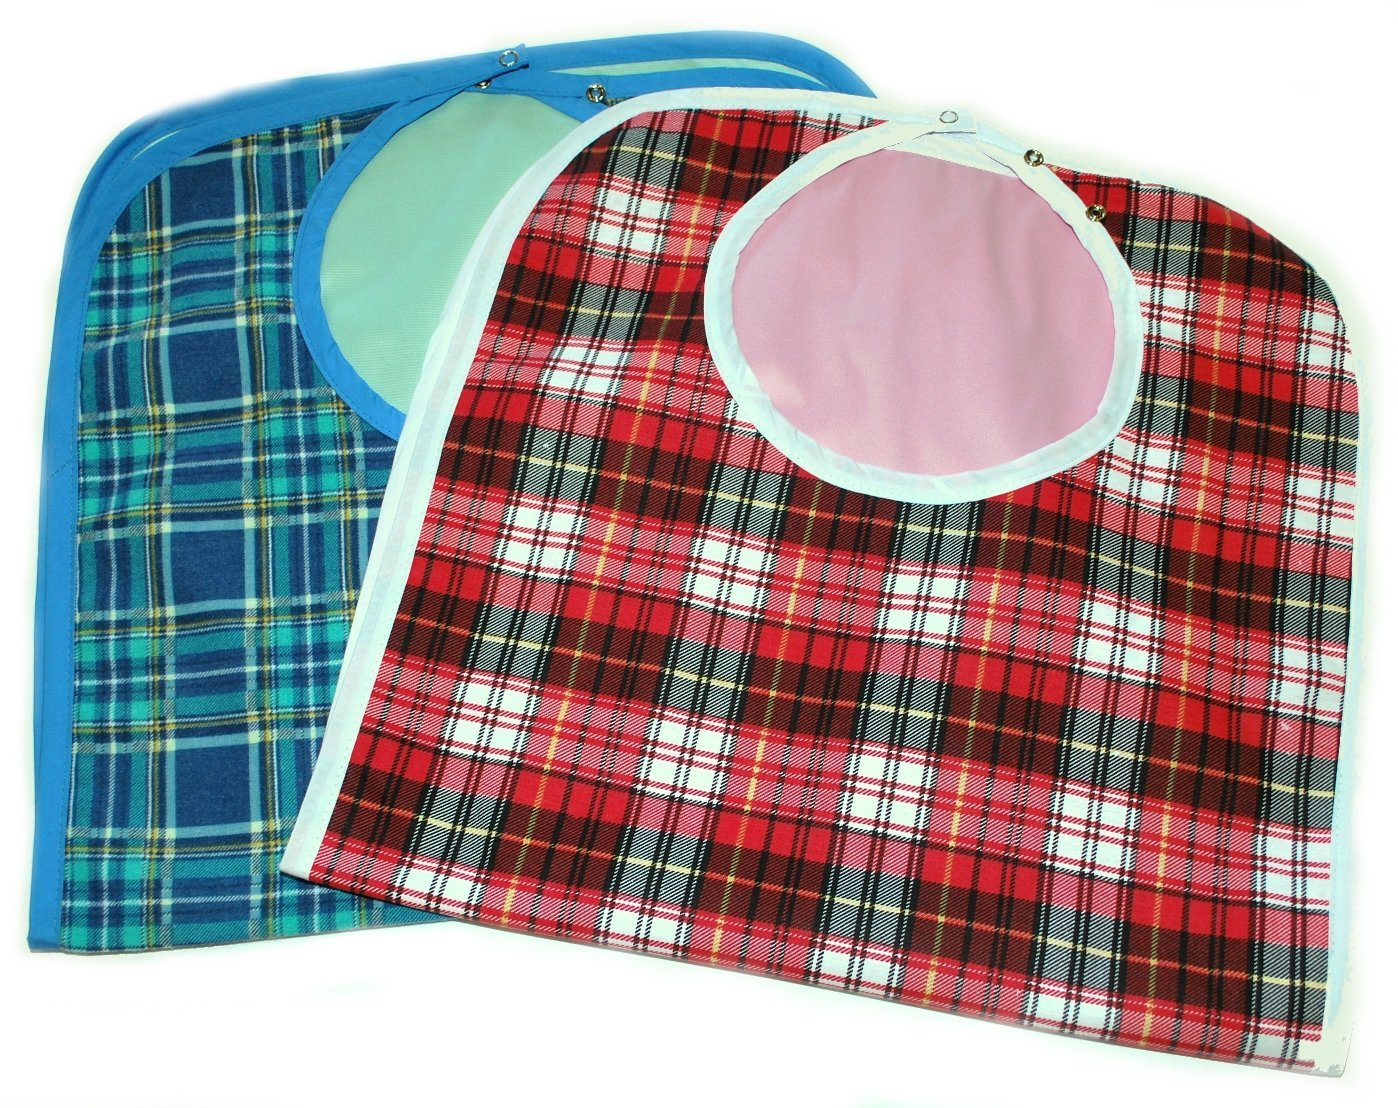 Large Extra Long, Reusable, Machine washable, Washable Clothing Spill, Mealtime Protector, Waterproof Ladies & Men Adult Sized Bib (Pk/2)